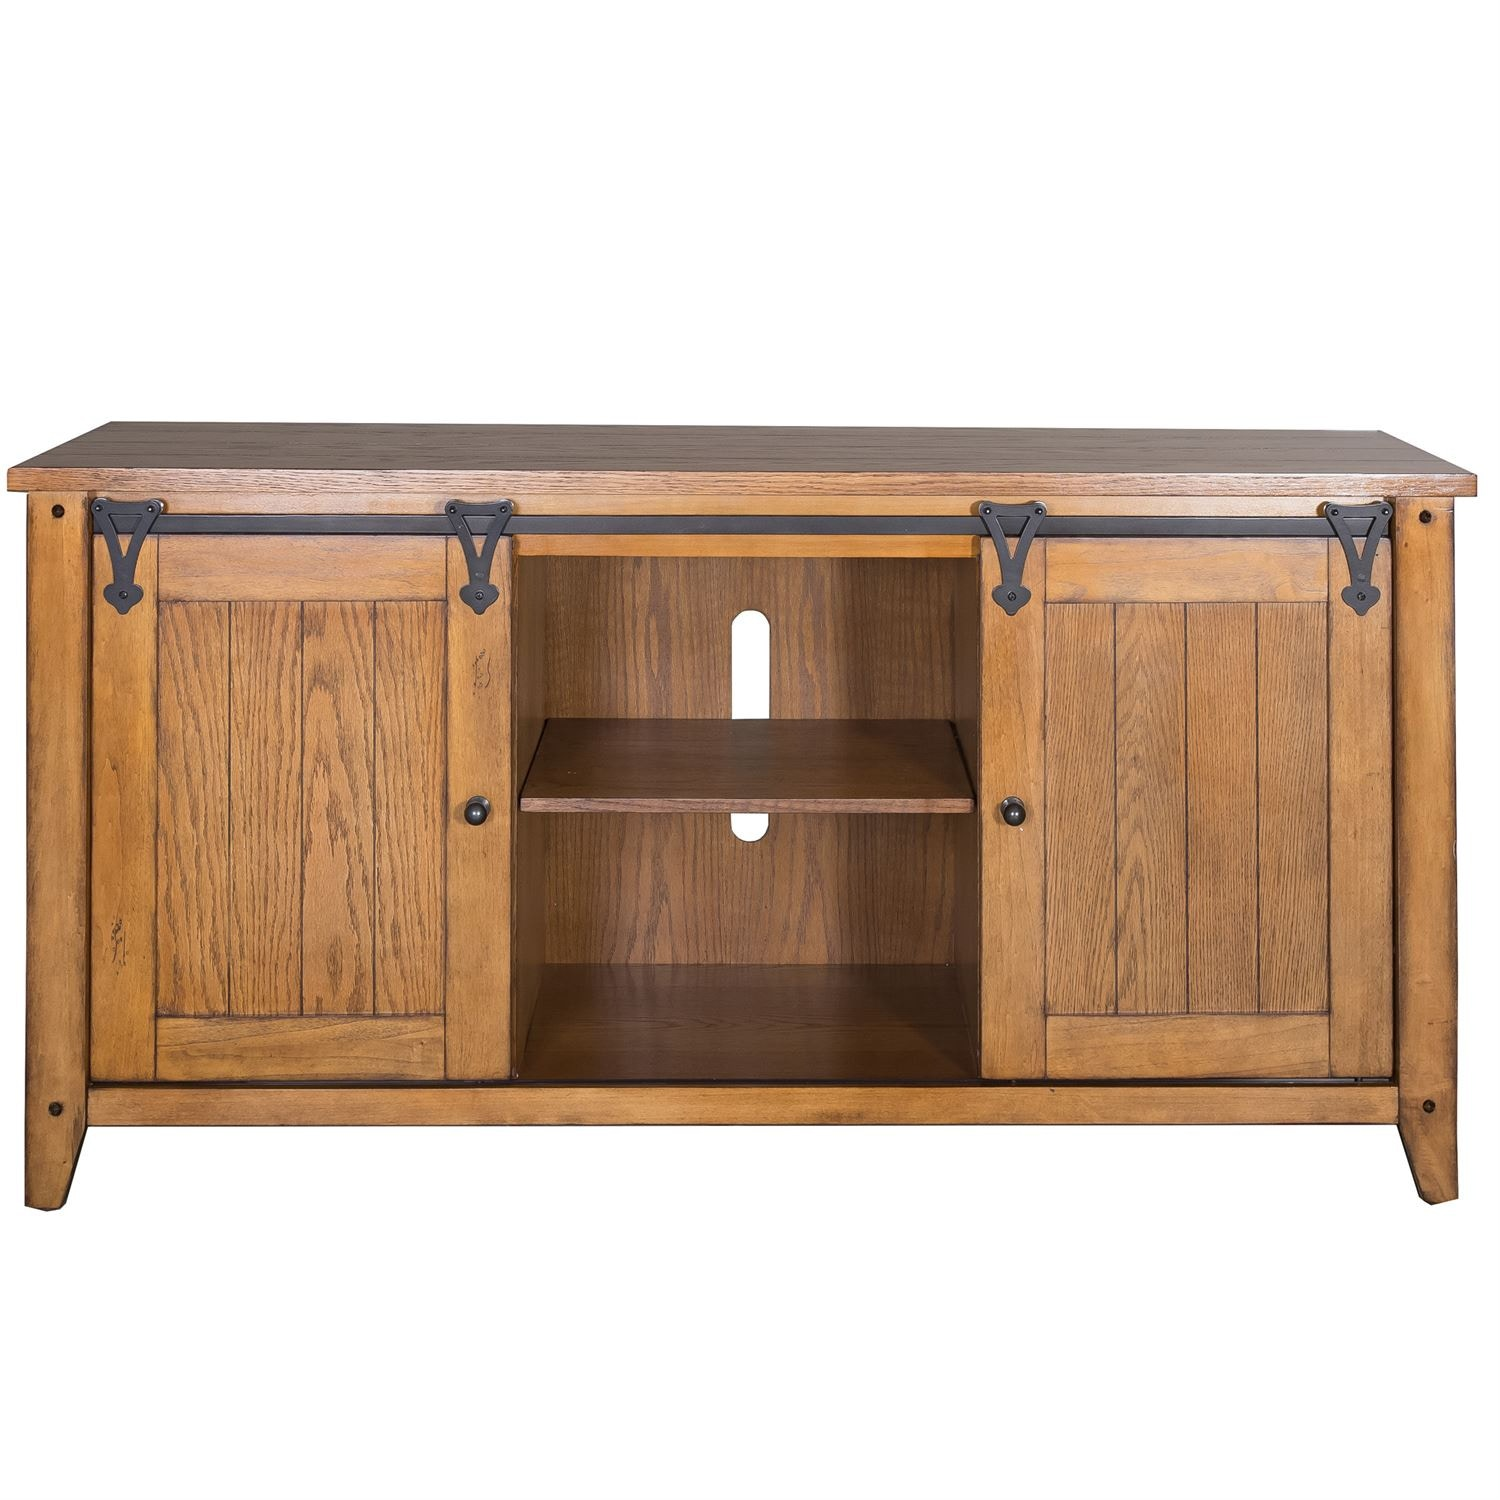 Superbe Liberty Furniture Home Entertainment TV Console 110 TV60 At Patrick  Furniture